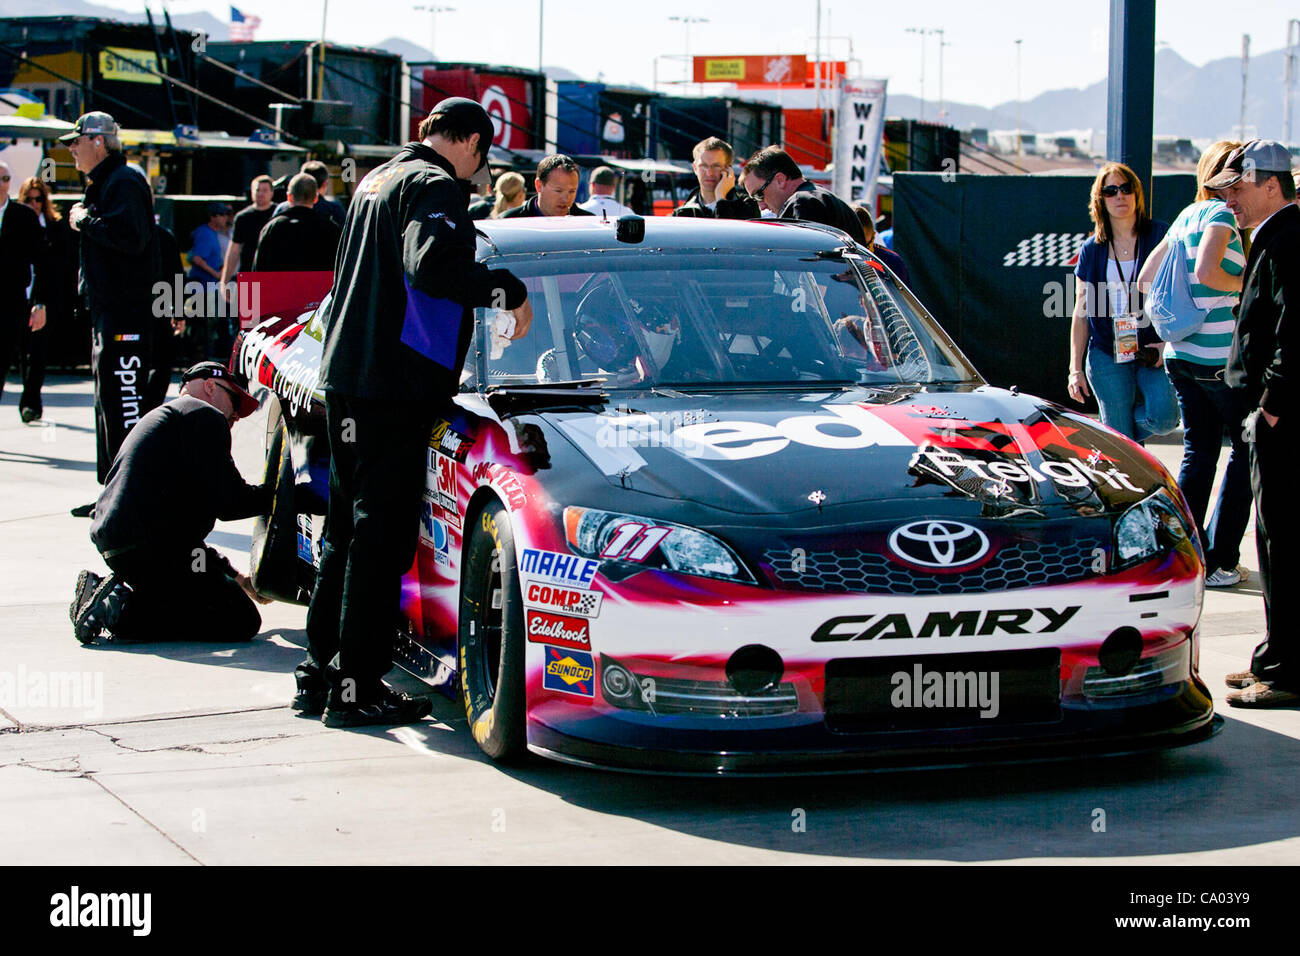 March 11, 2012 - Las Vegas, Nevada, U.S - Some of the crew members make final preparations to the #11 FedEx Freight Stock Photo